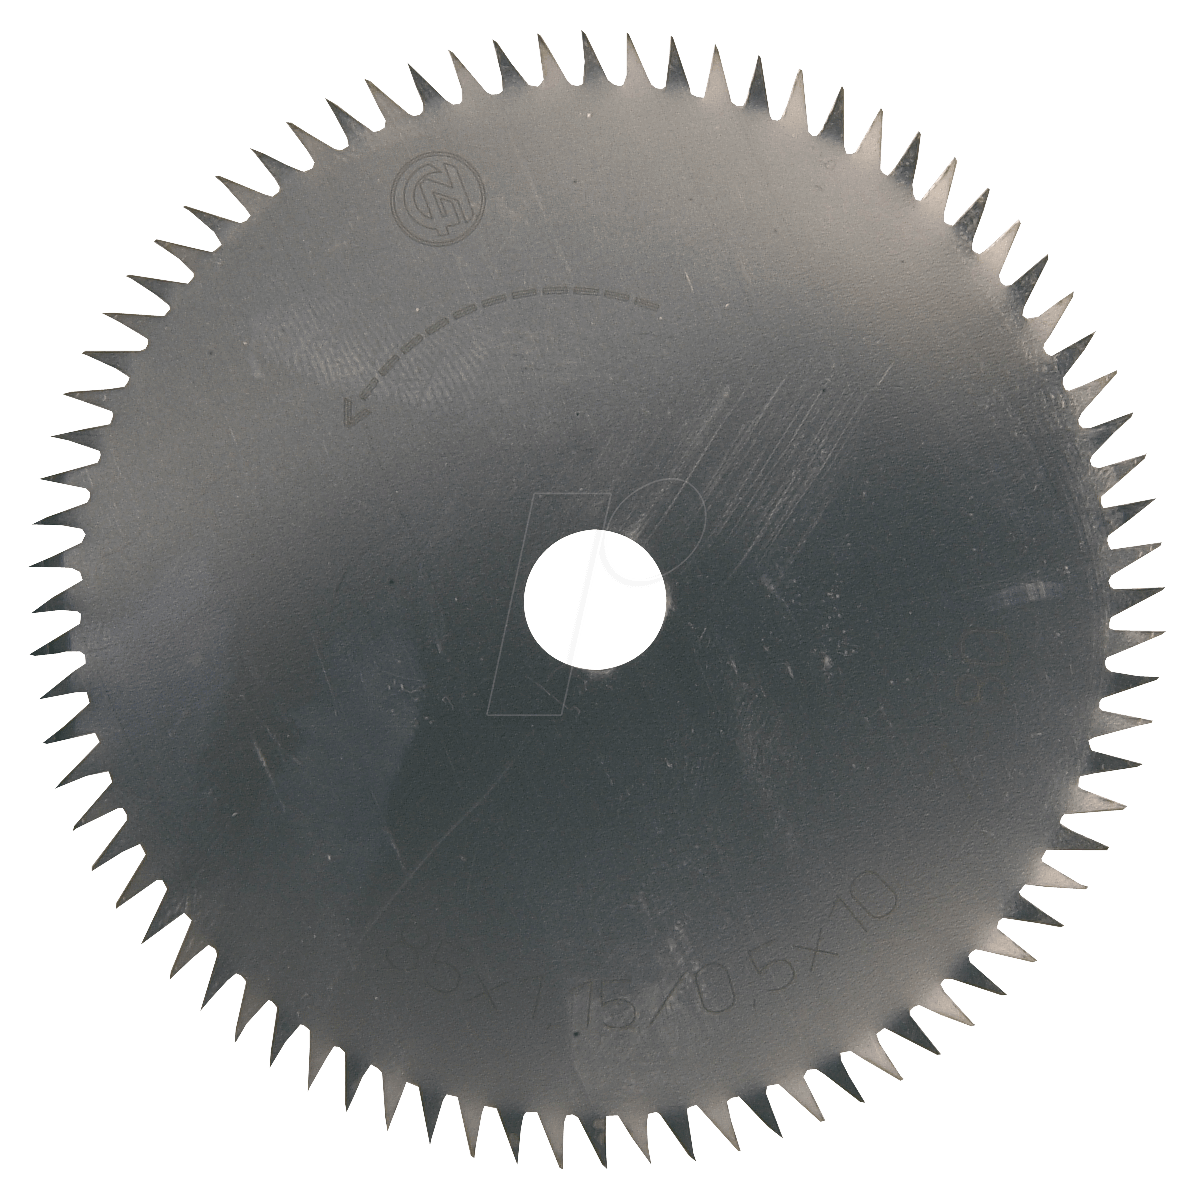 Proxxon 28731 Circular Saw Blade 80 Teeth For Table Saw Fks E At Reichelt Elektronik